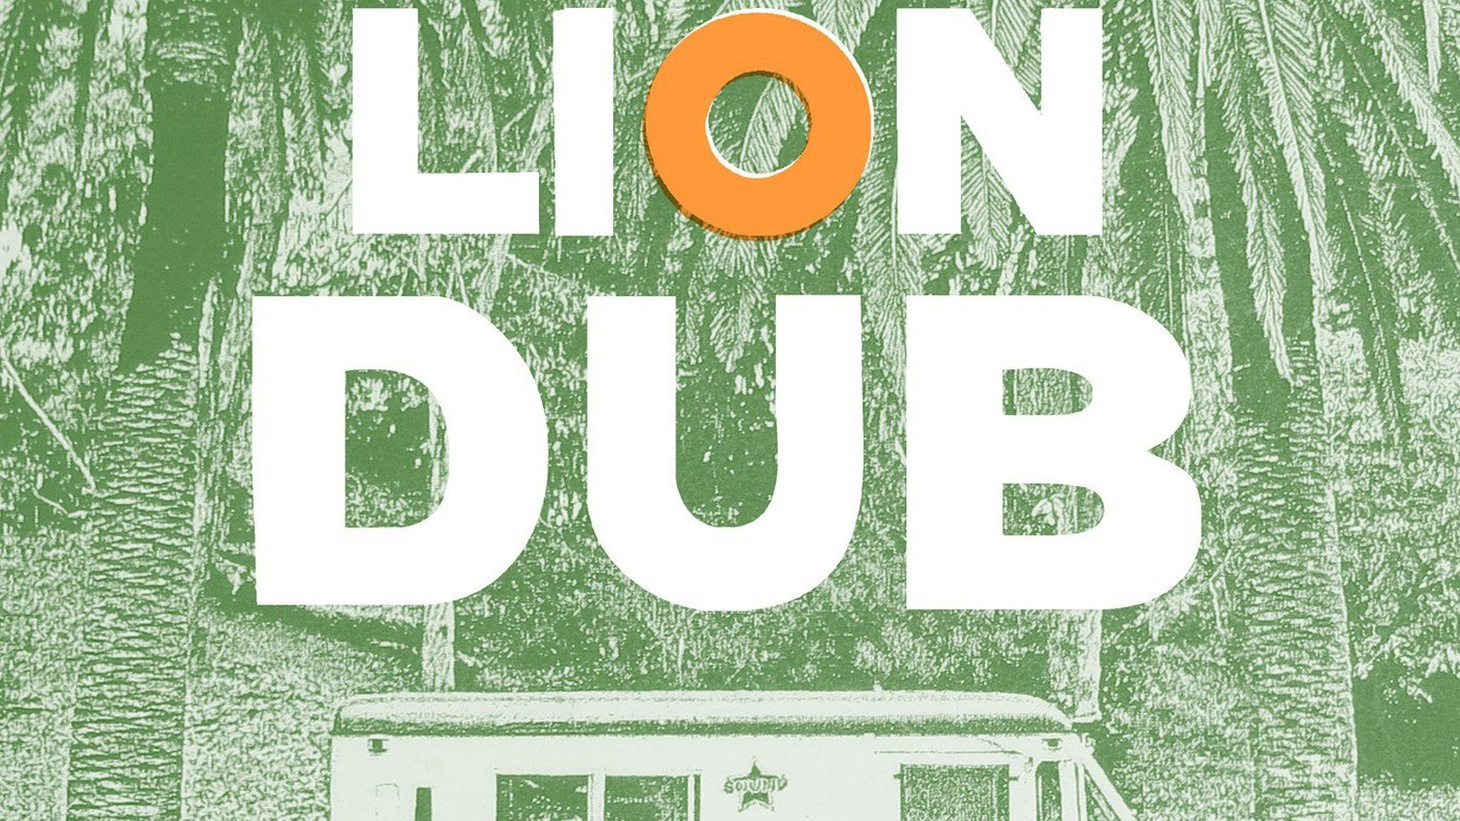 The Lions and producer Tom Chasteen's beloved Dub Club join forces for a stunning tribute to the soulful sounds of the golden age of 70s sound systems.